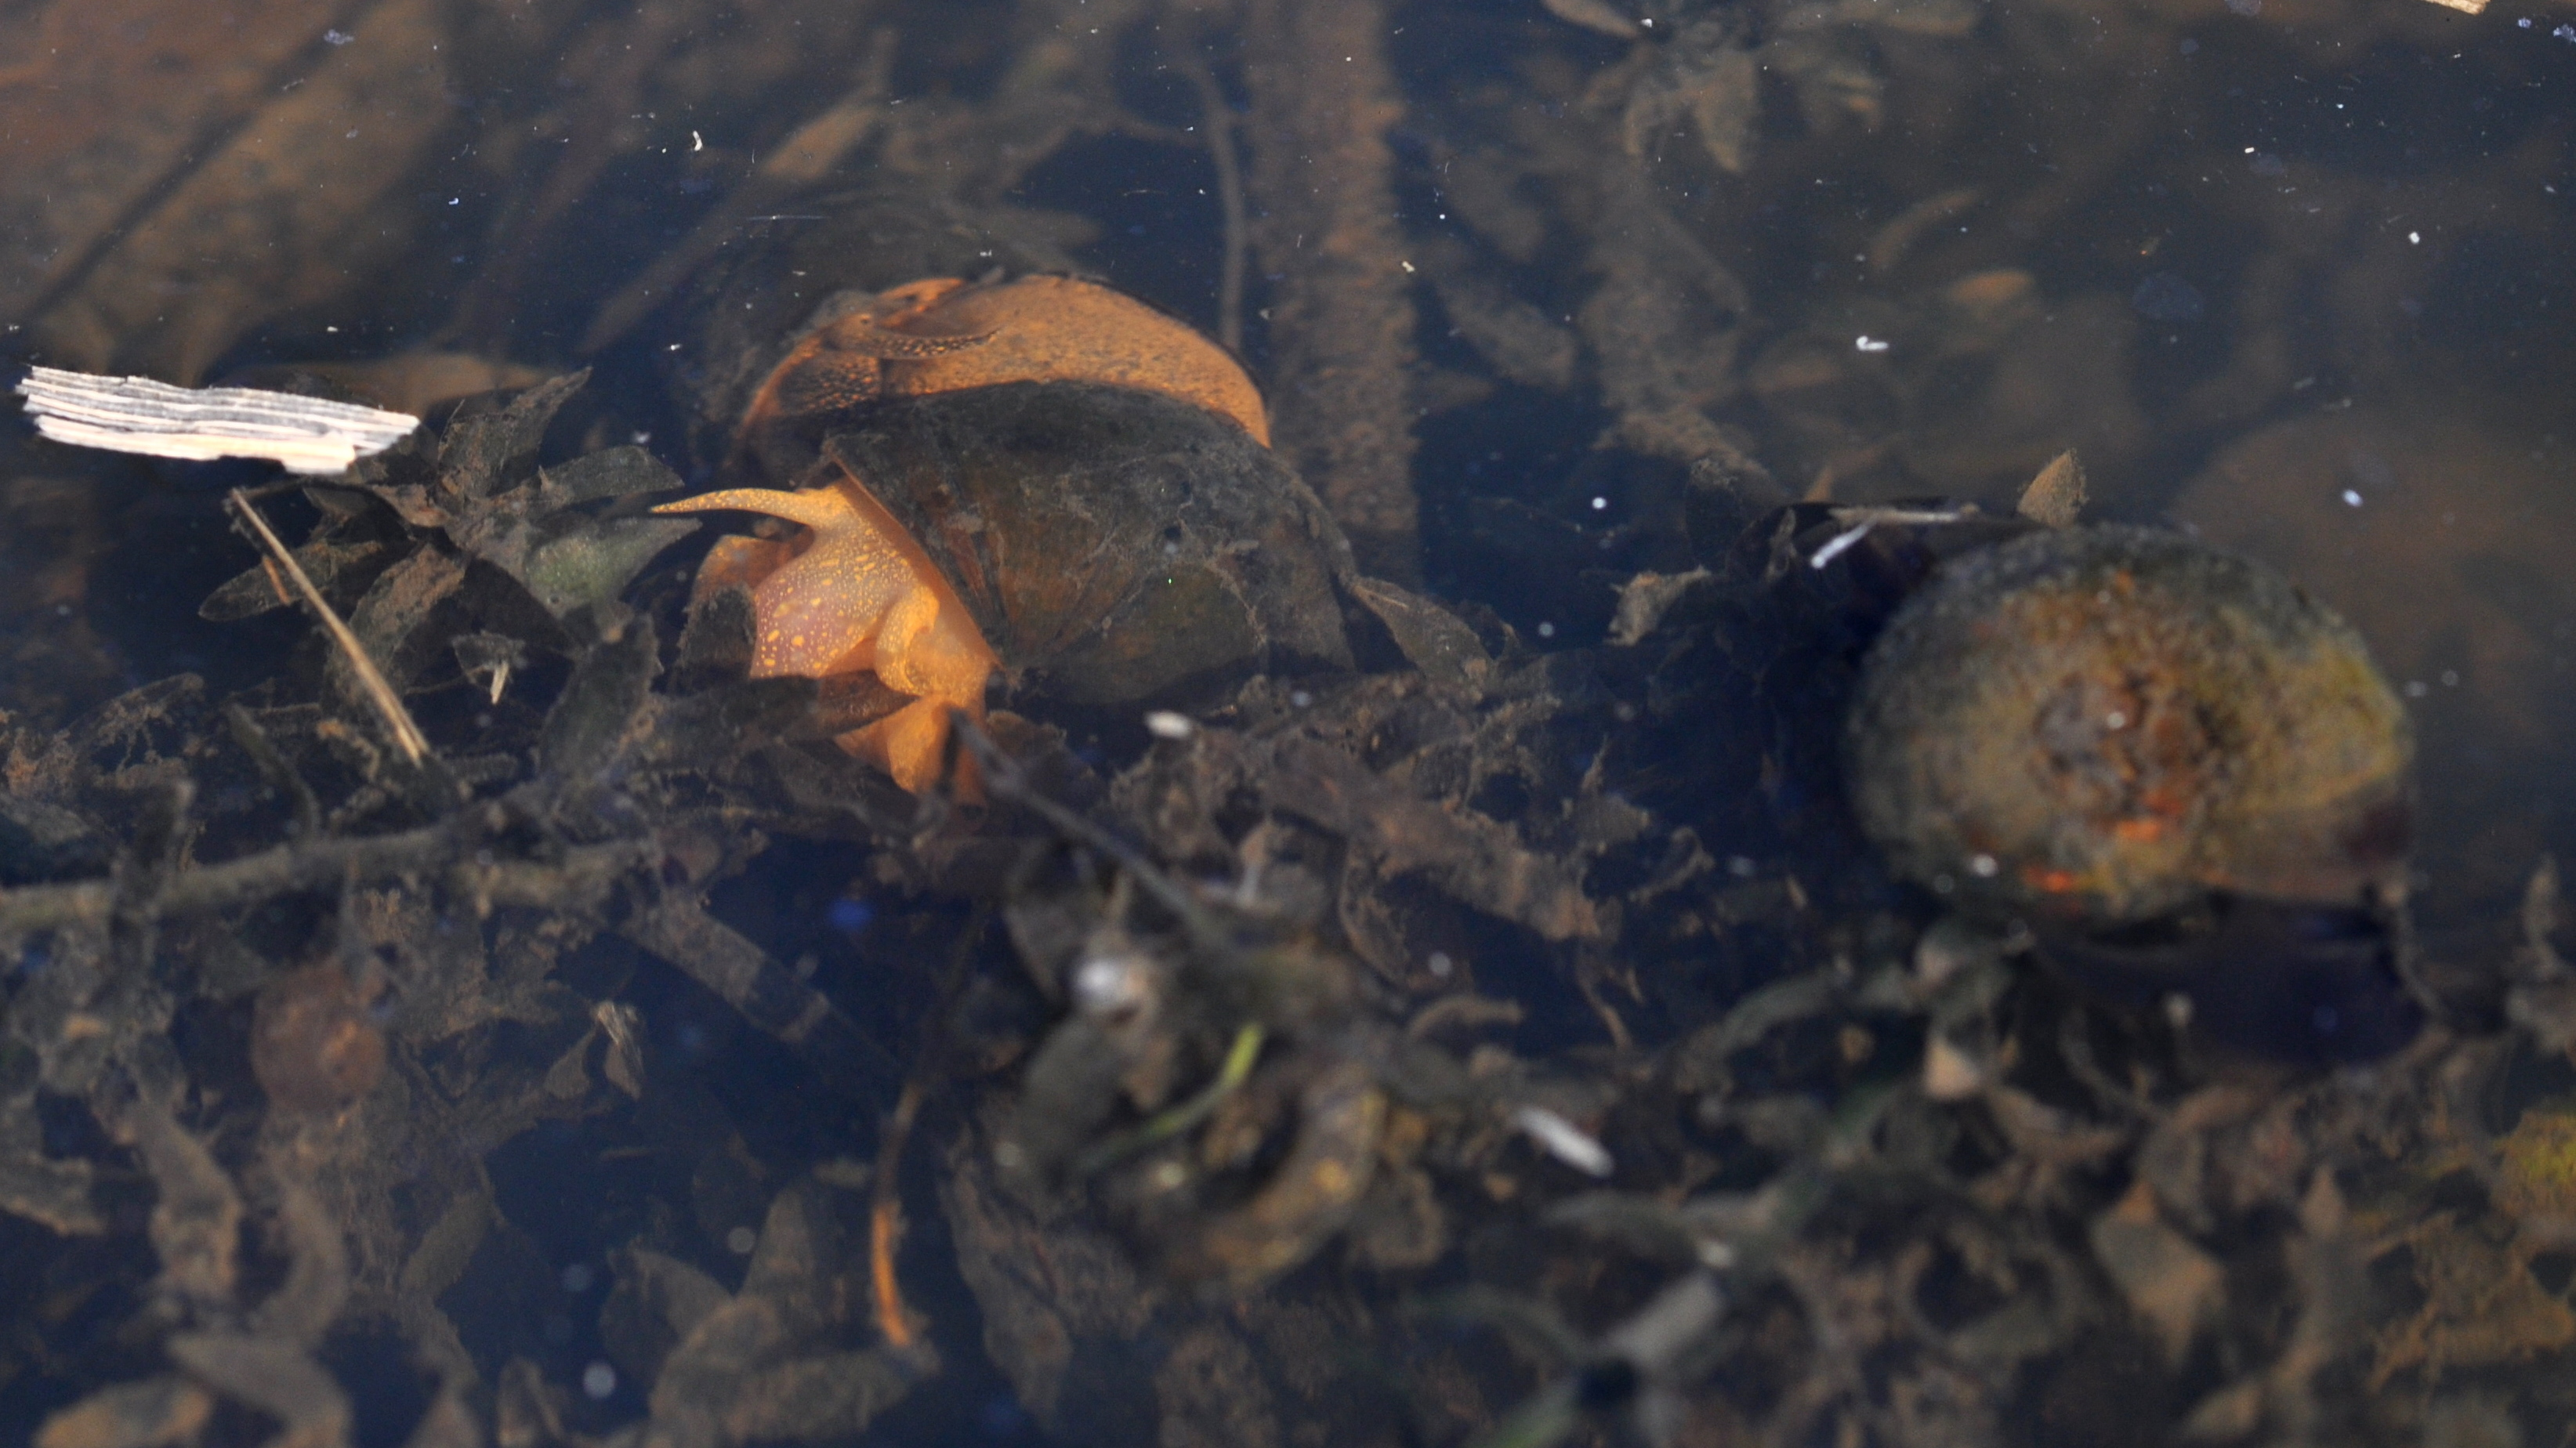 Image of Lister's River Snail